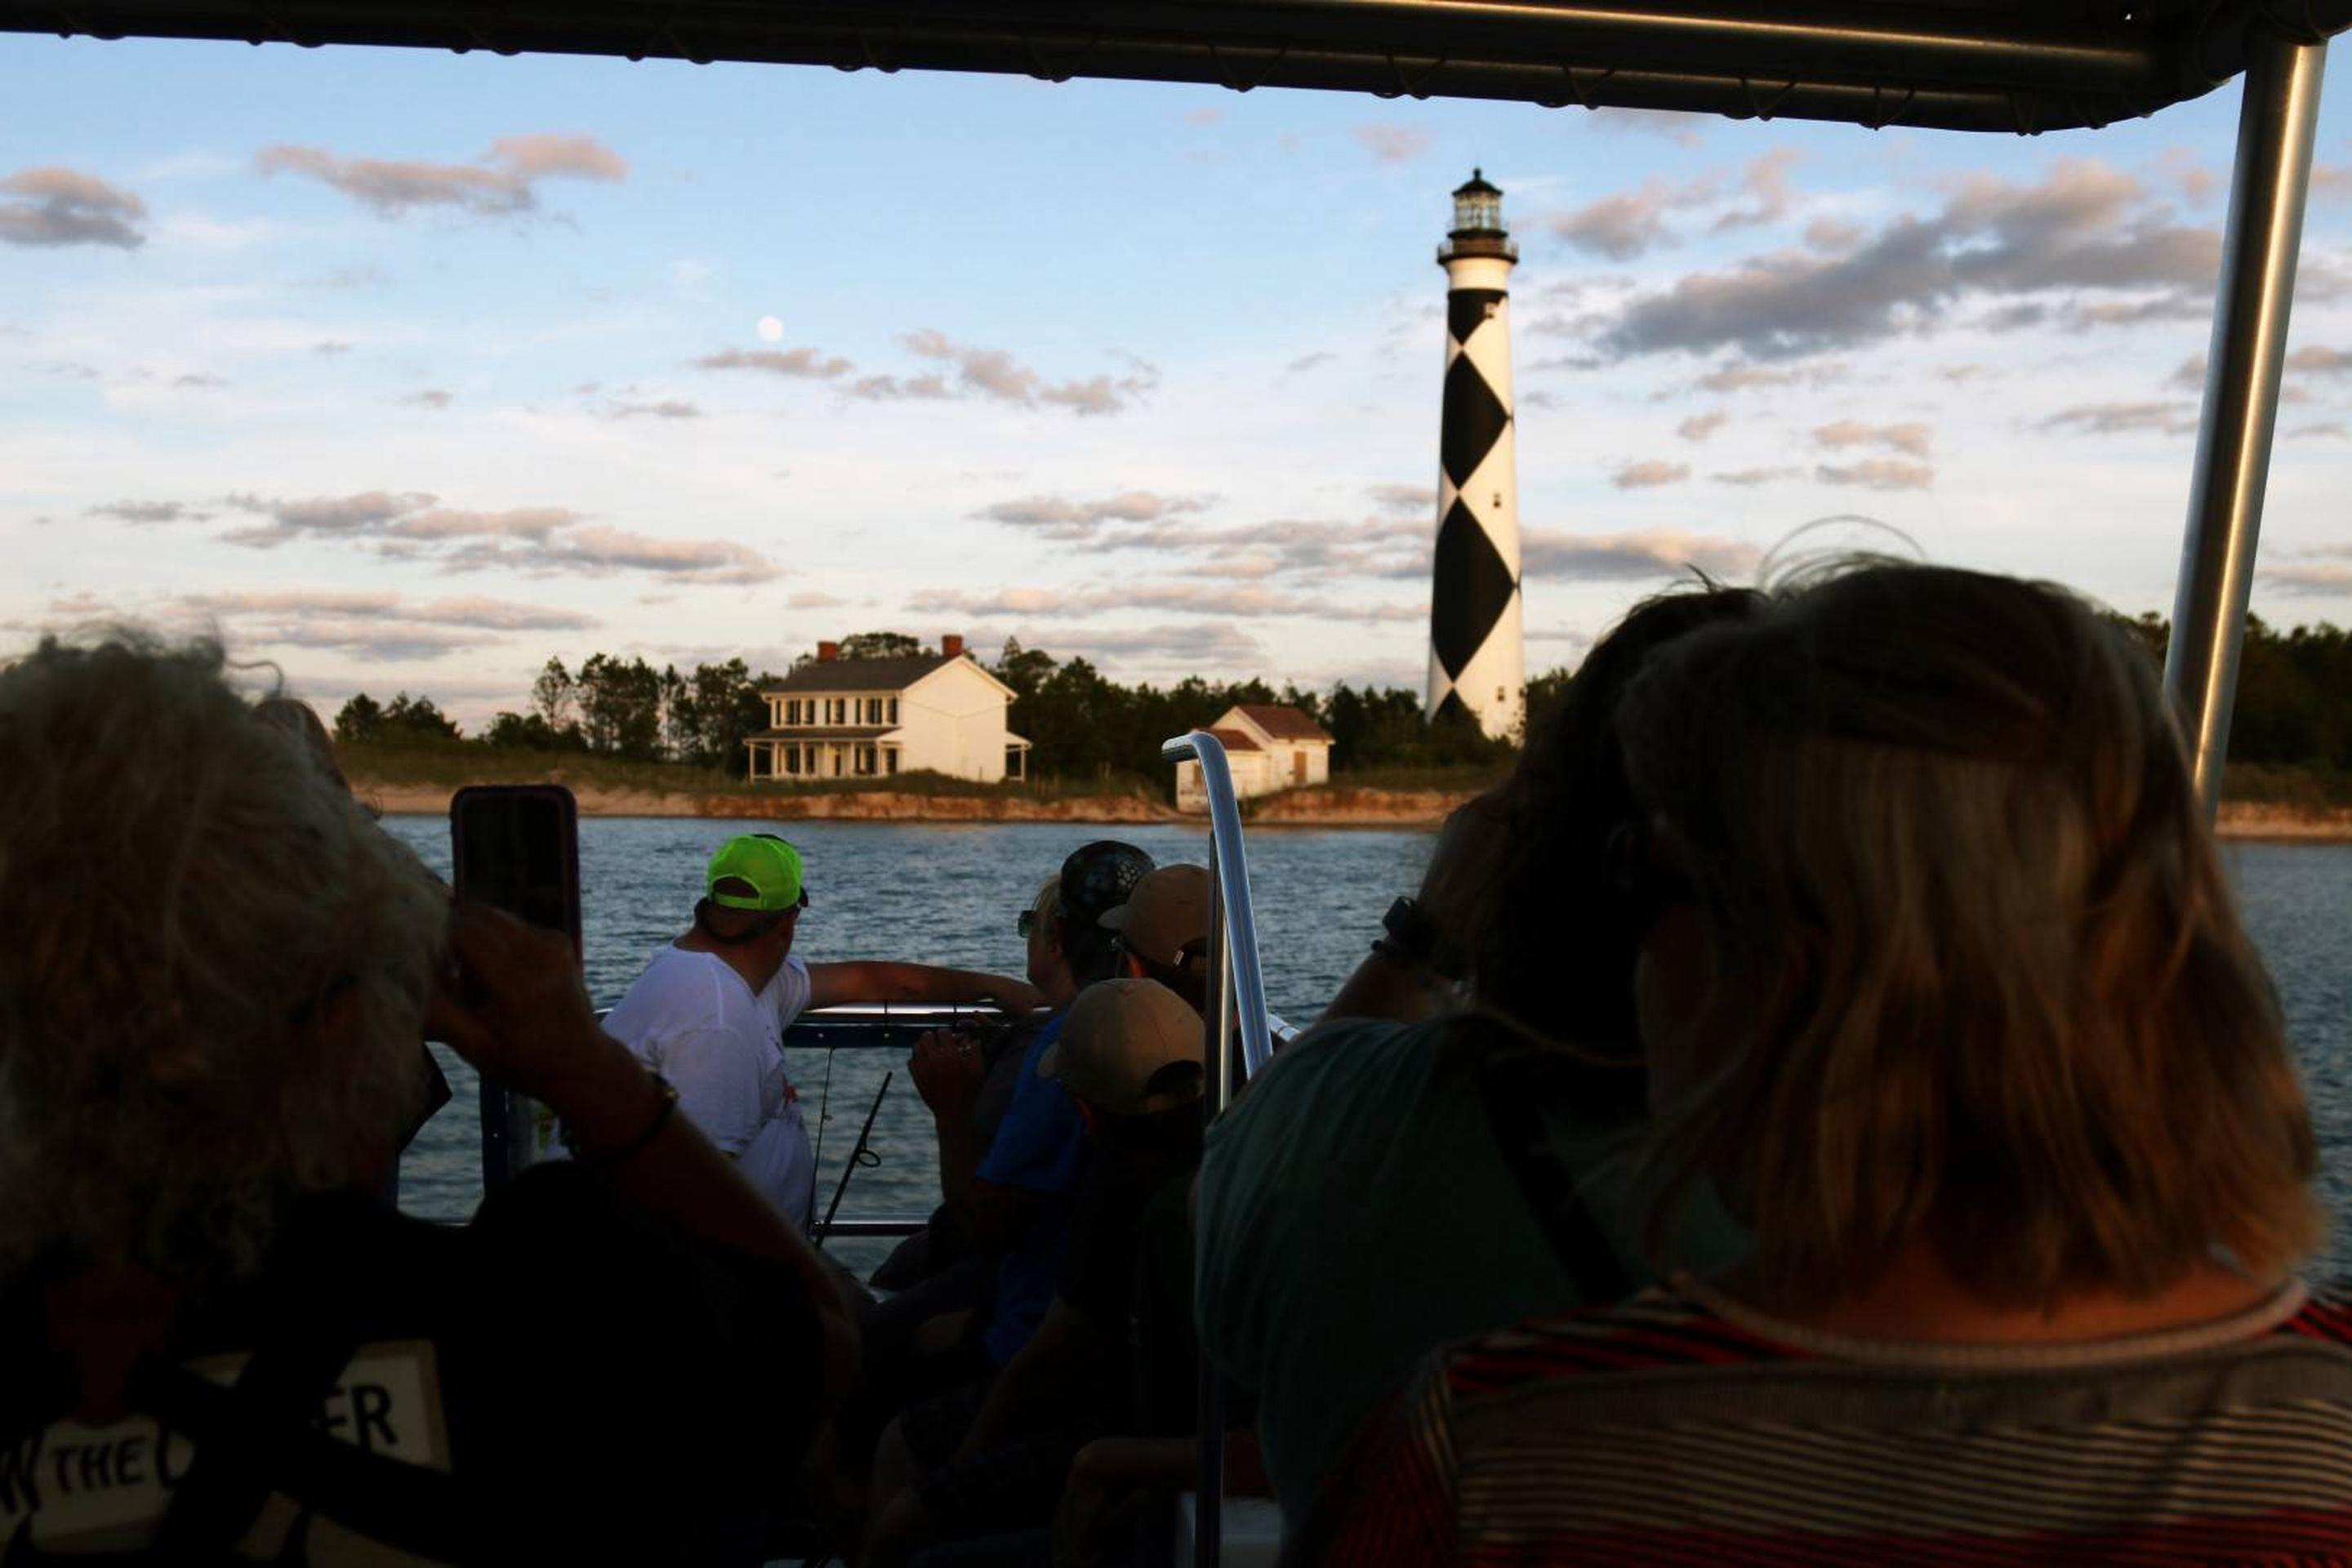 View of Cape Lookout Lighthouse Area from the ferry.Participants of the Evening at the Cape Tour arrive to the Lighthouse area, the evening's main attraction.